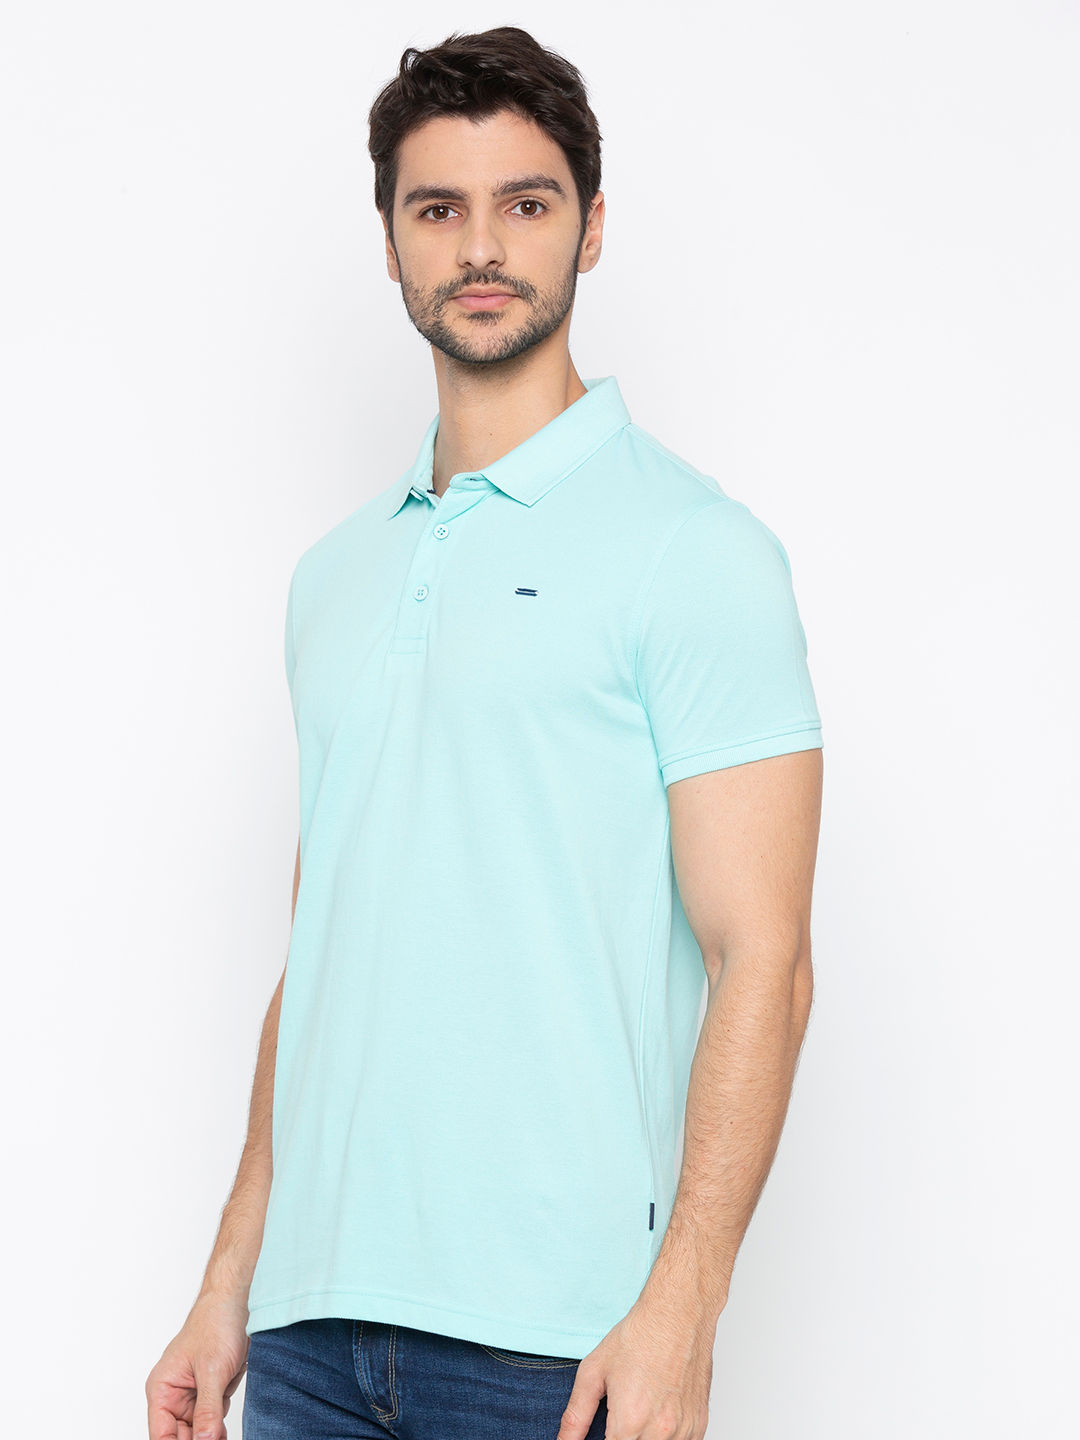 Aqua Solid Polo T-Shirt